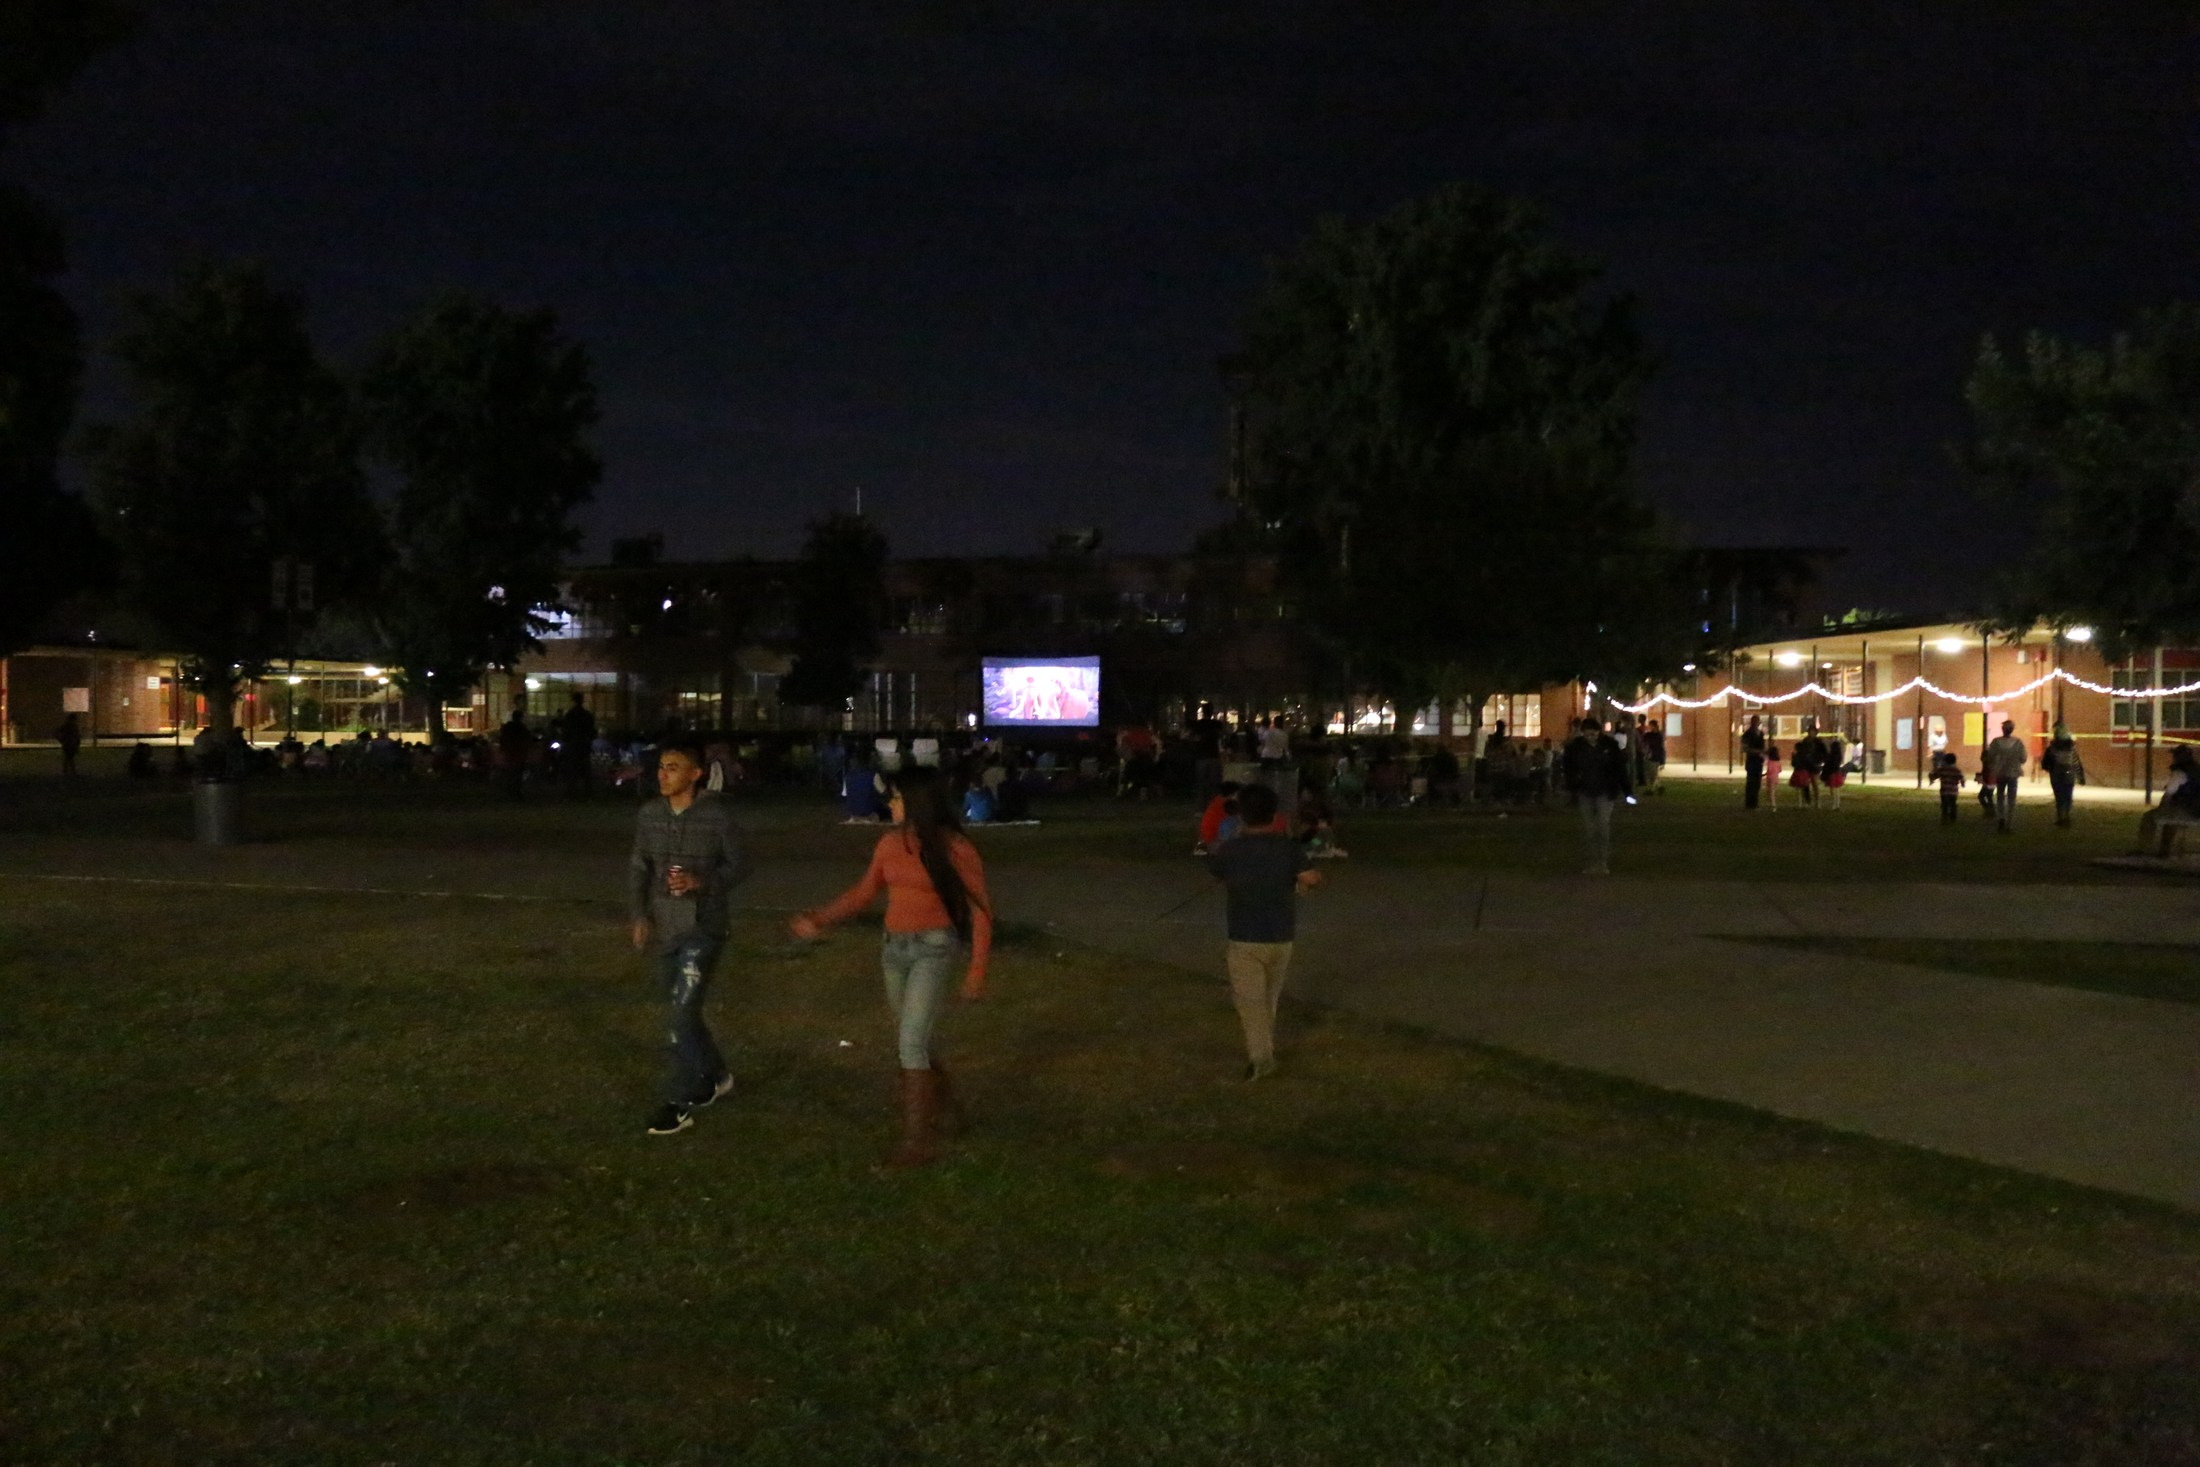 Students and family gathered on the lawn of Arvin High to watch a movie on the big screen as a part of the After school family movie night.